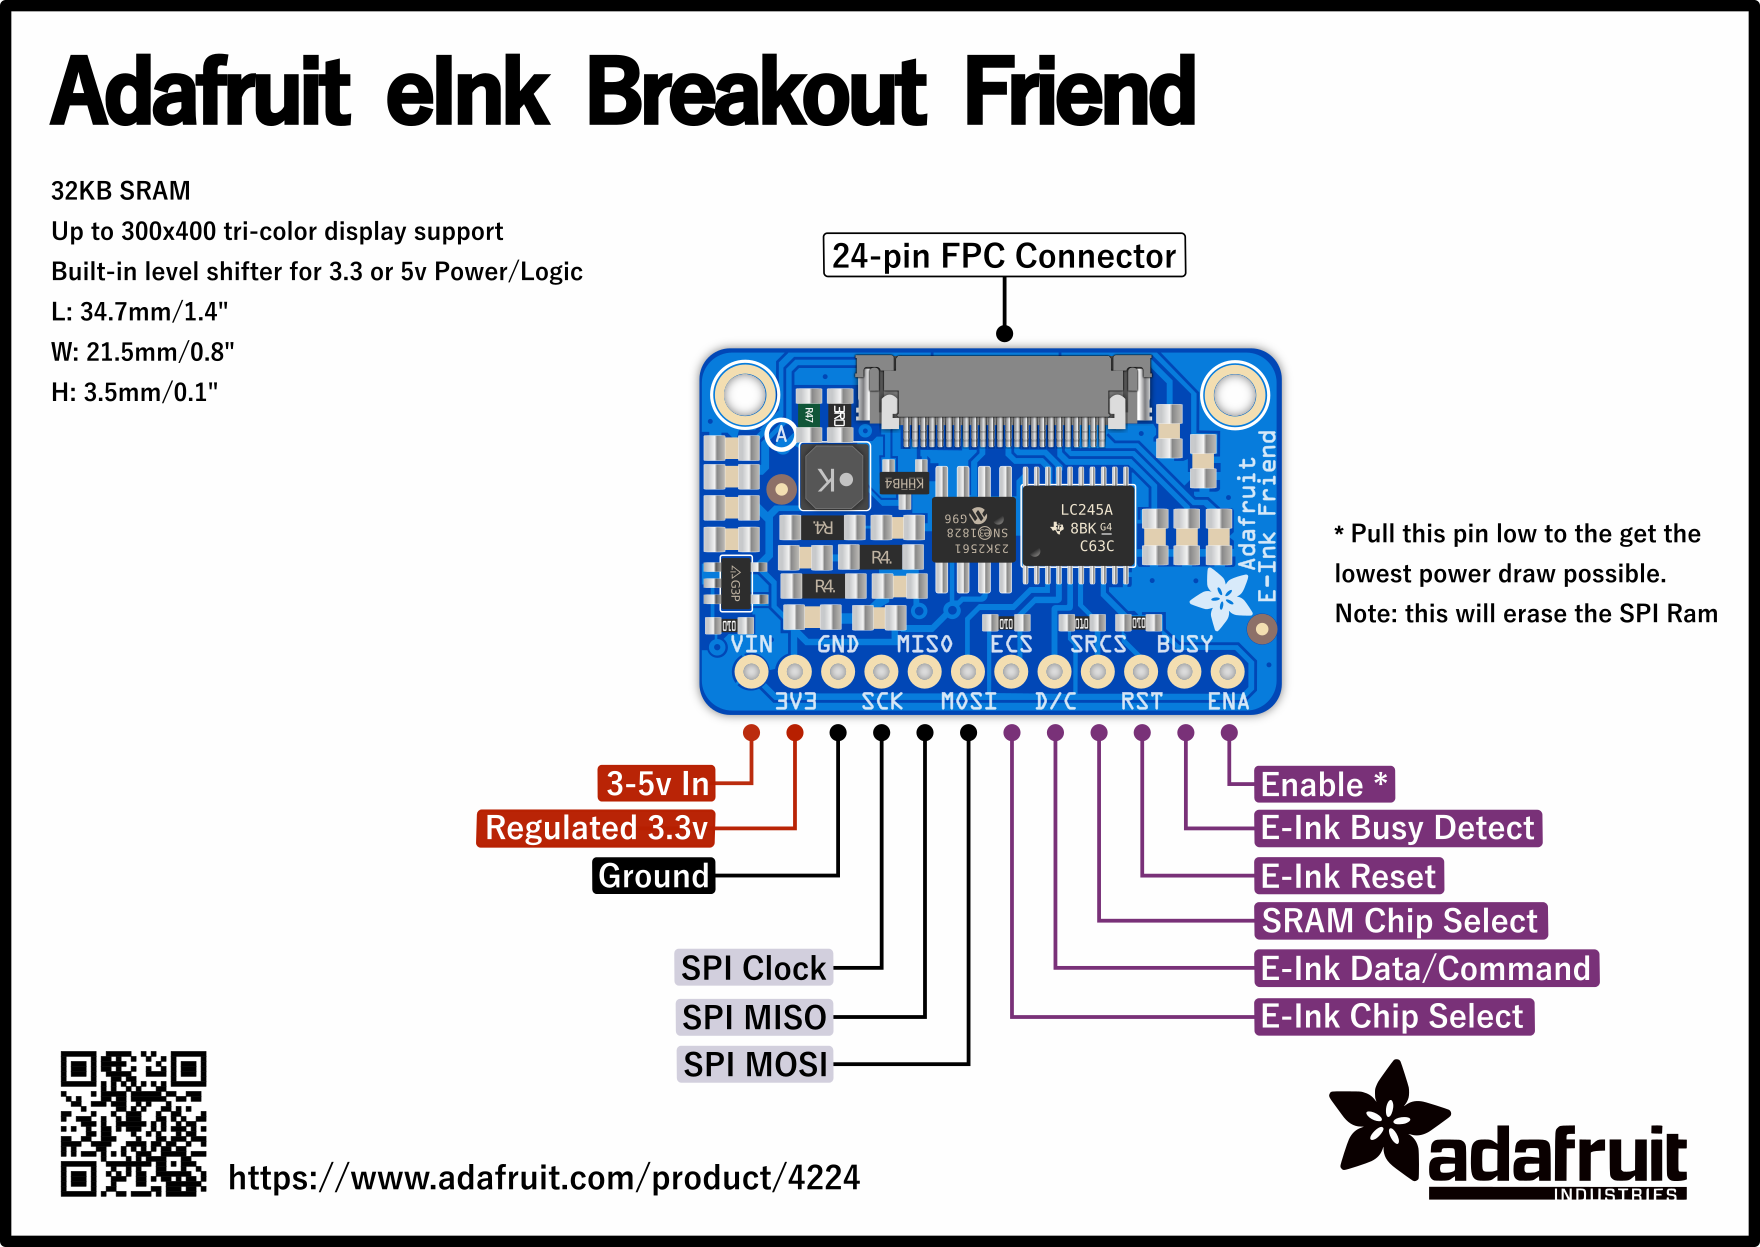 adafruit_products_eInk_Breakout_Friend.png